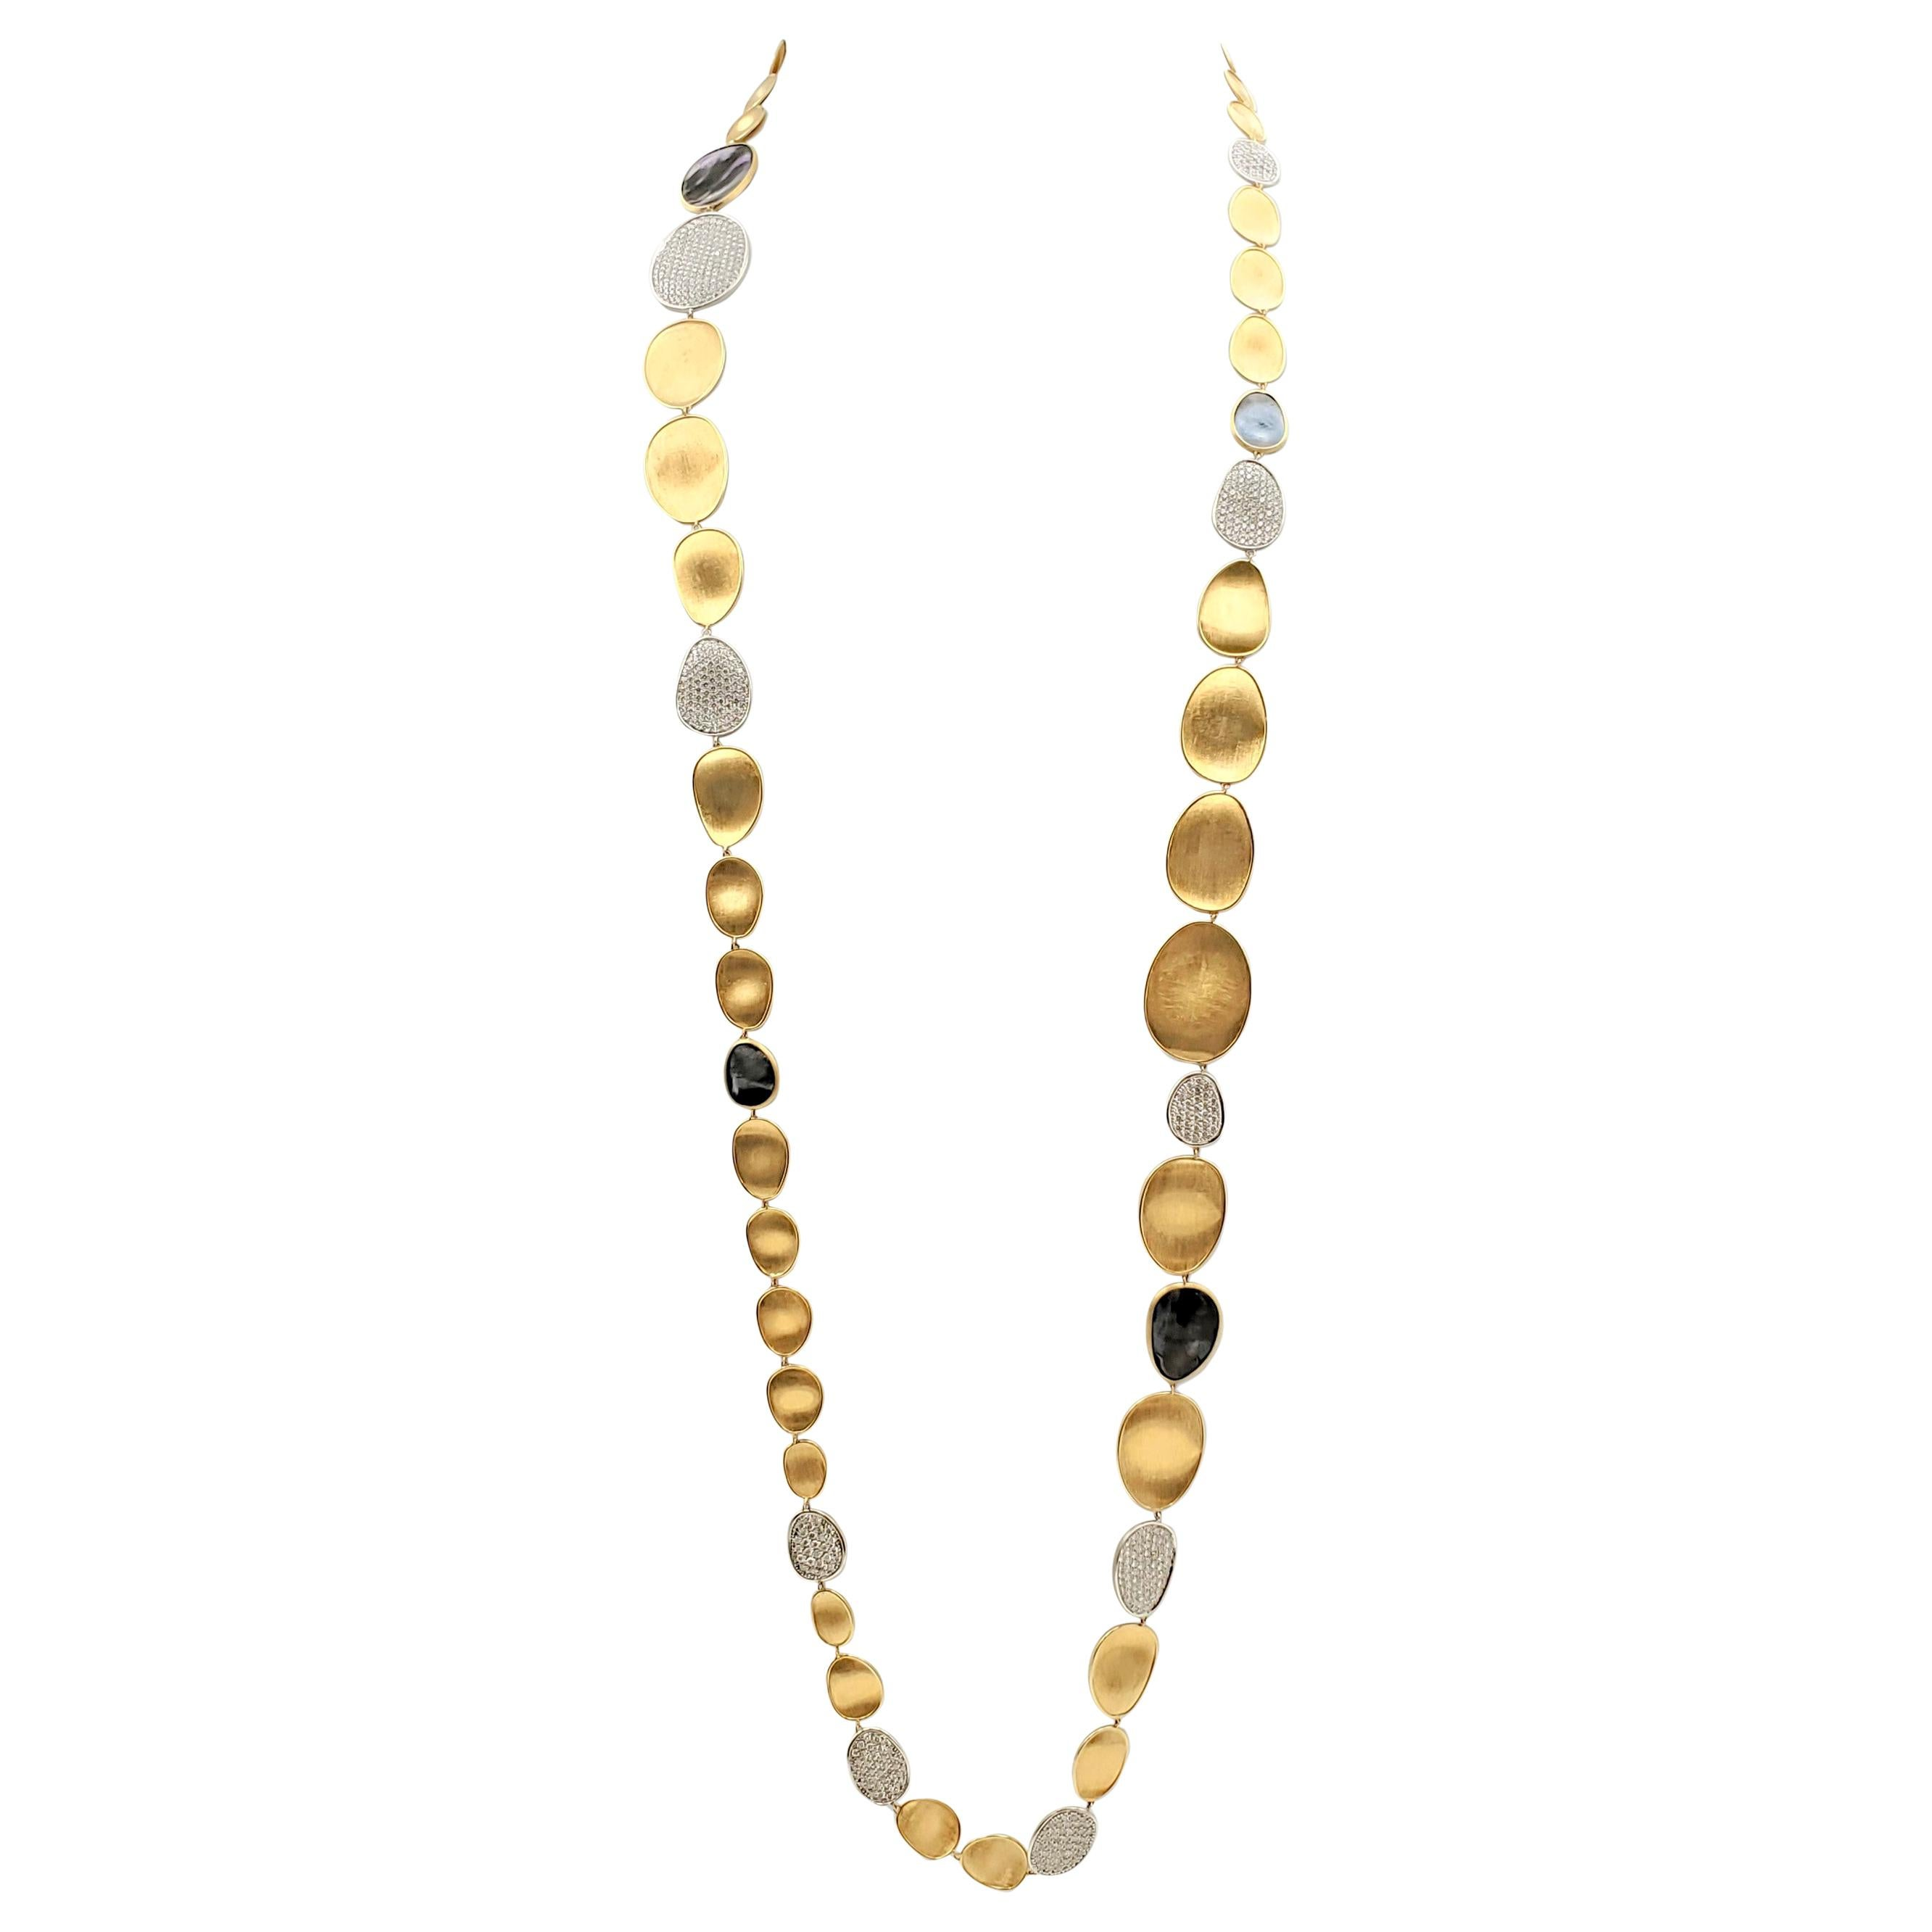 Marco Bicego 'Lunaria' Mother of Pearl and Diamond Sautoir Necklace